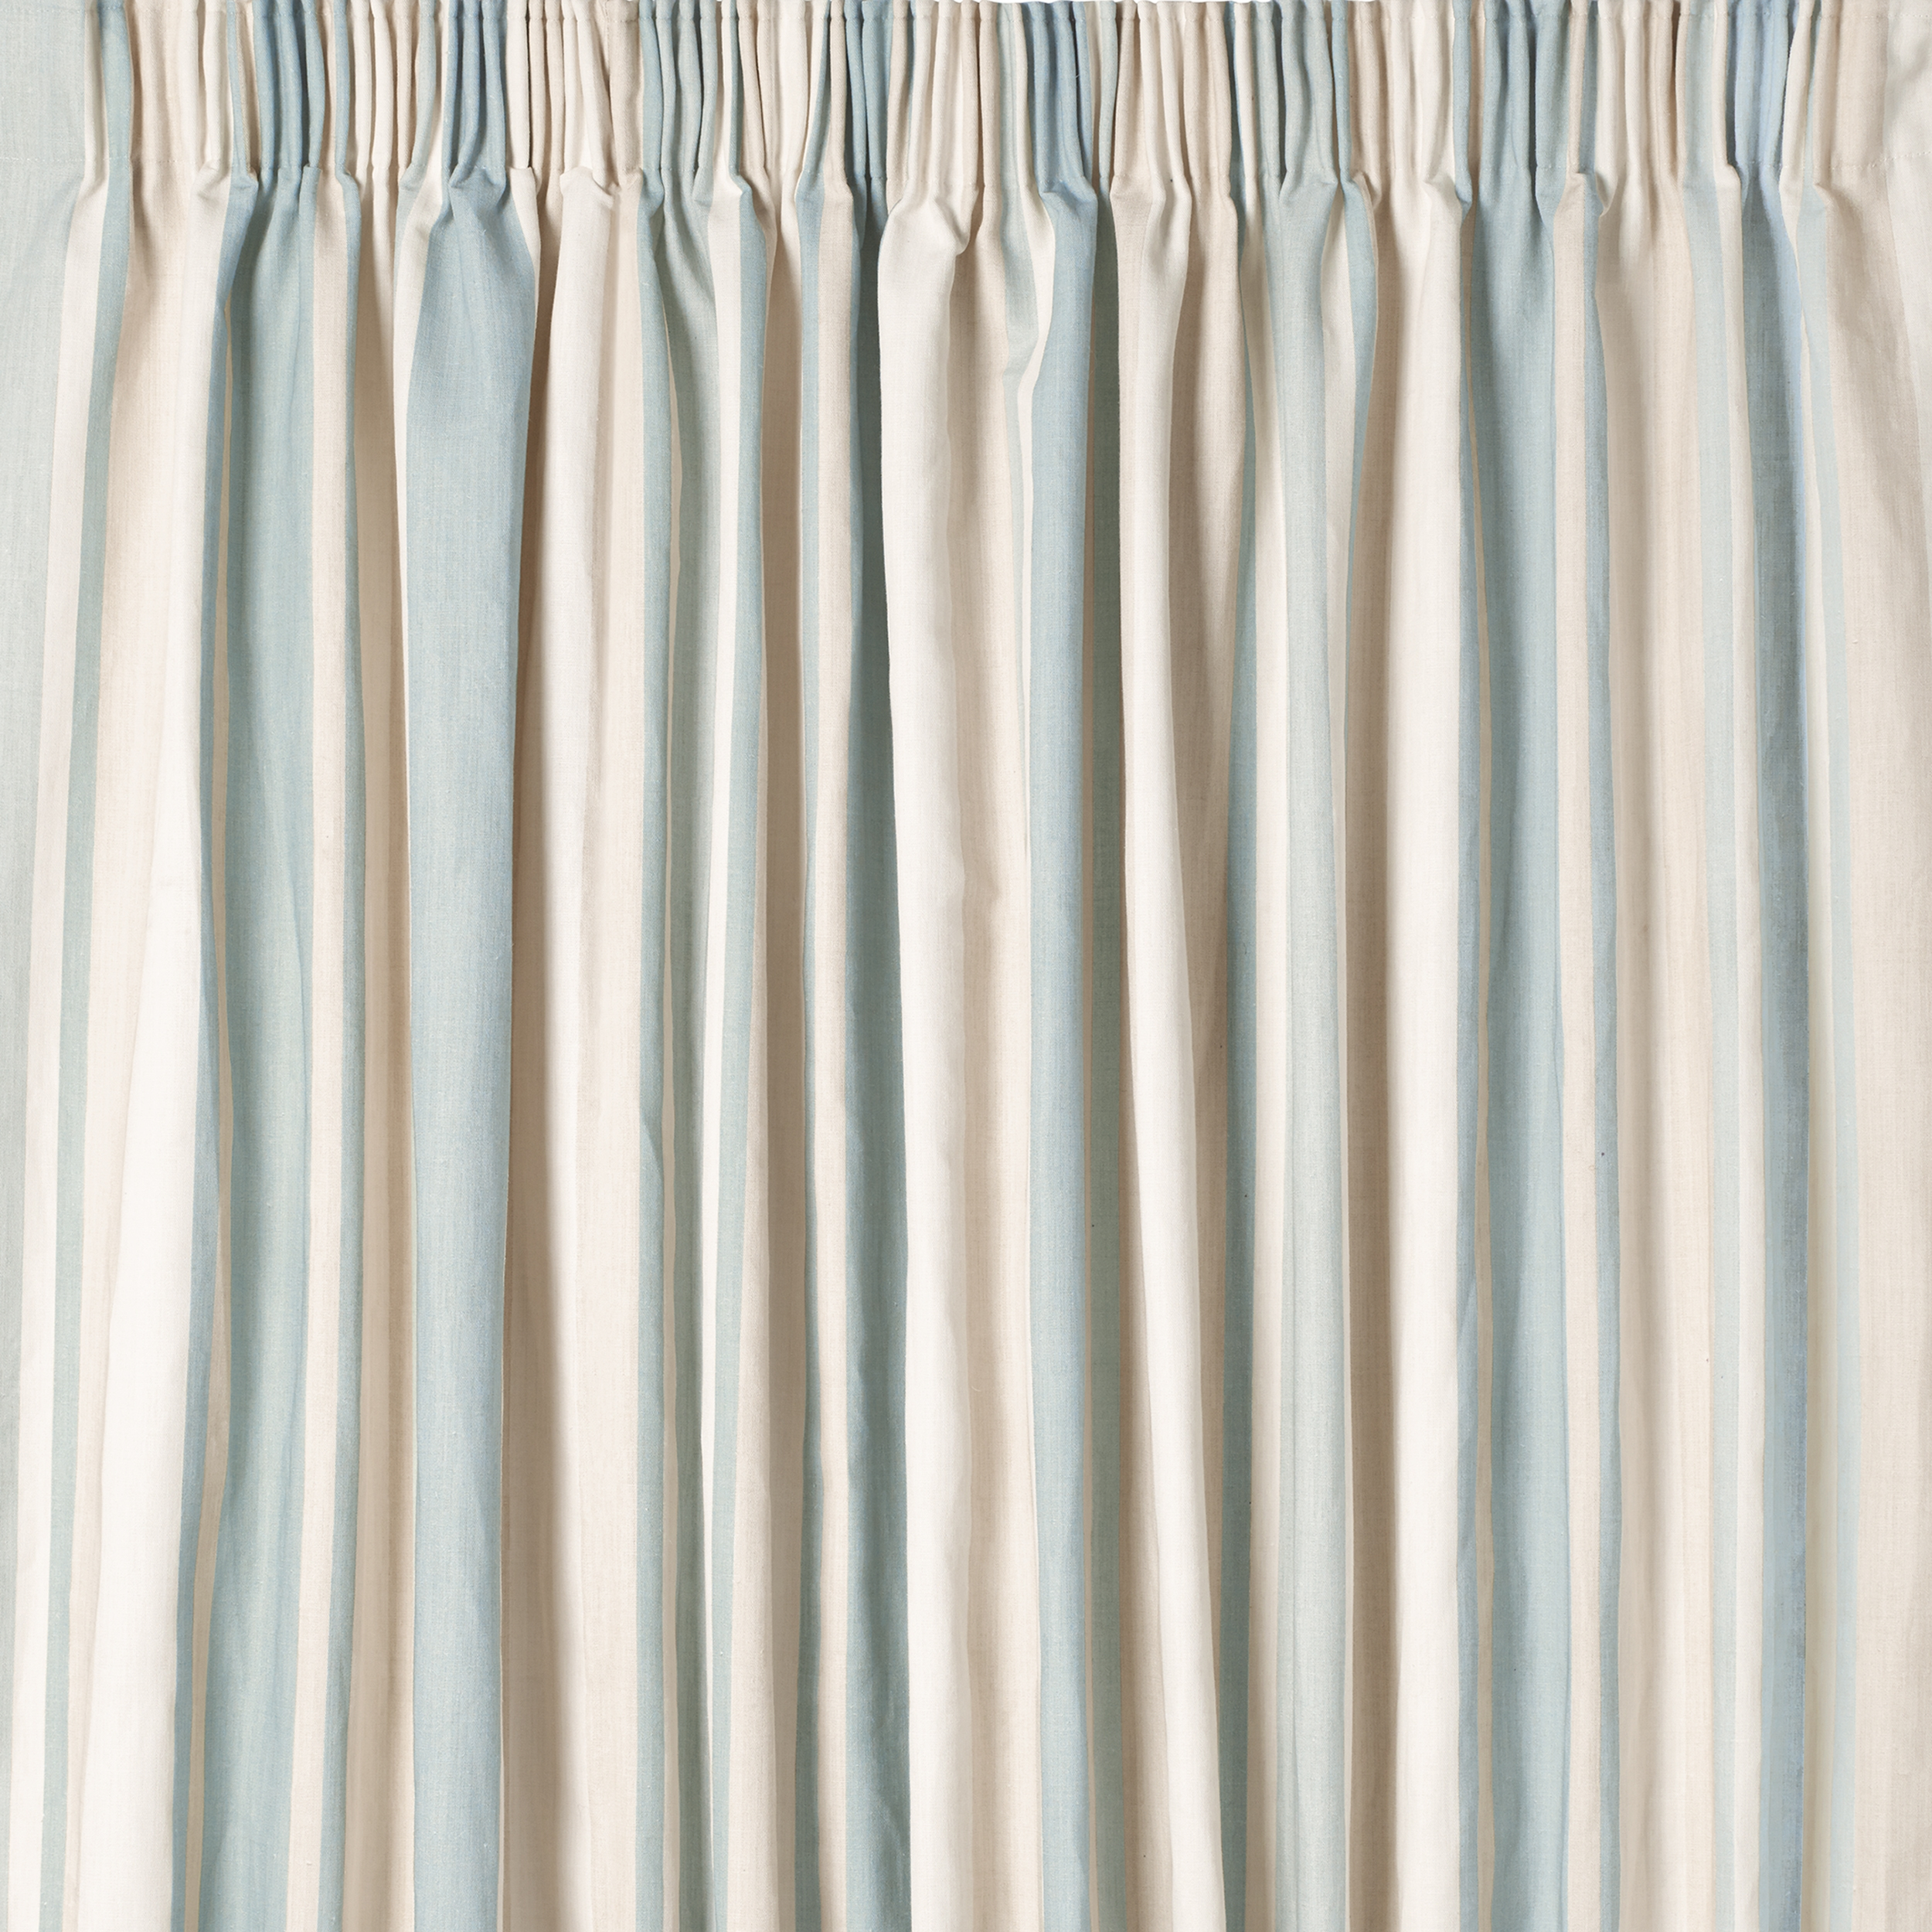 Awning Stripe Duck Egg Ready Made Curtains At Laura Ashley Intended For Duck Egg Blue Striped Curtains (Image 4 of 15)